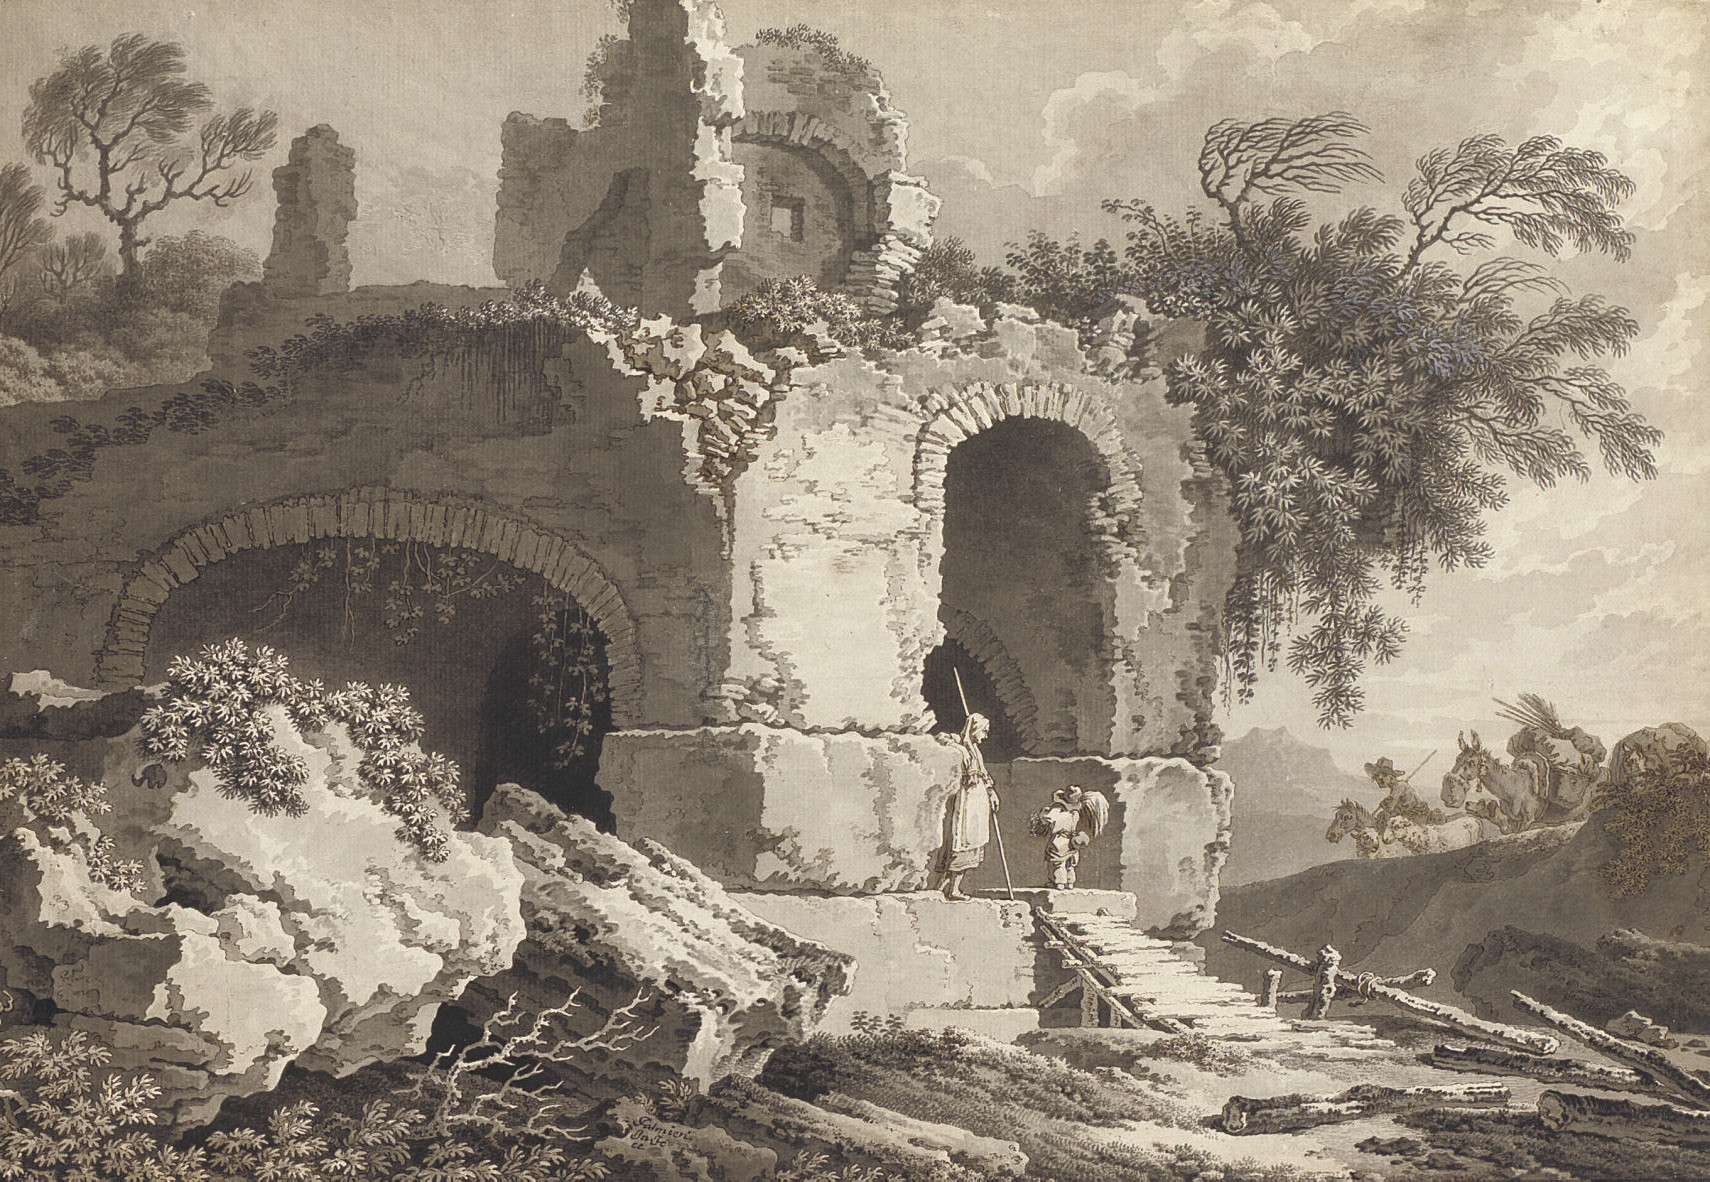 A peasant family and their animals among classical ruins